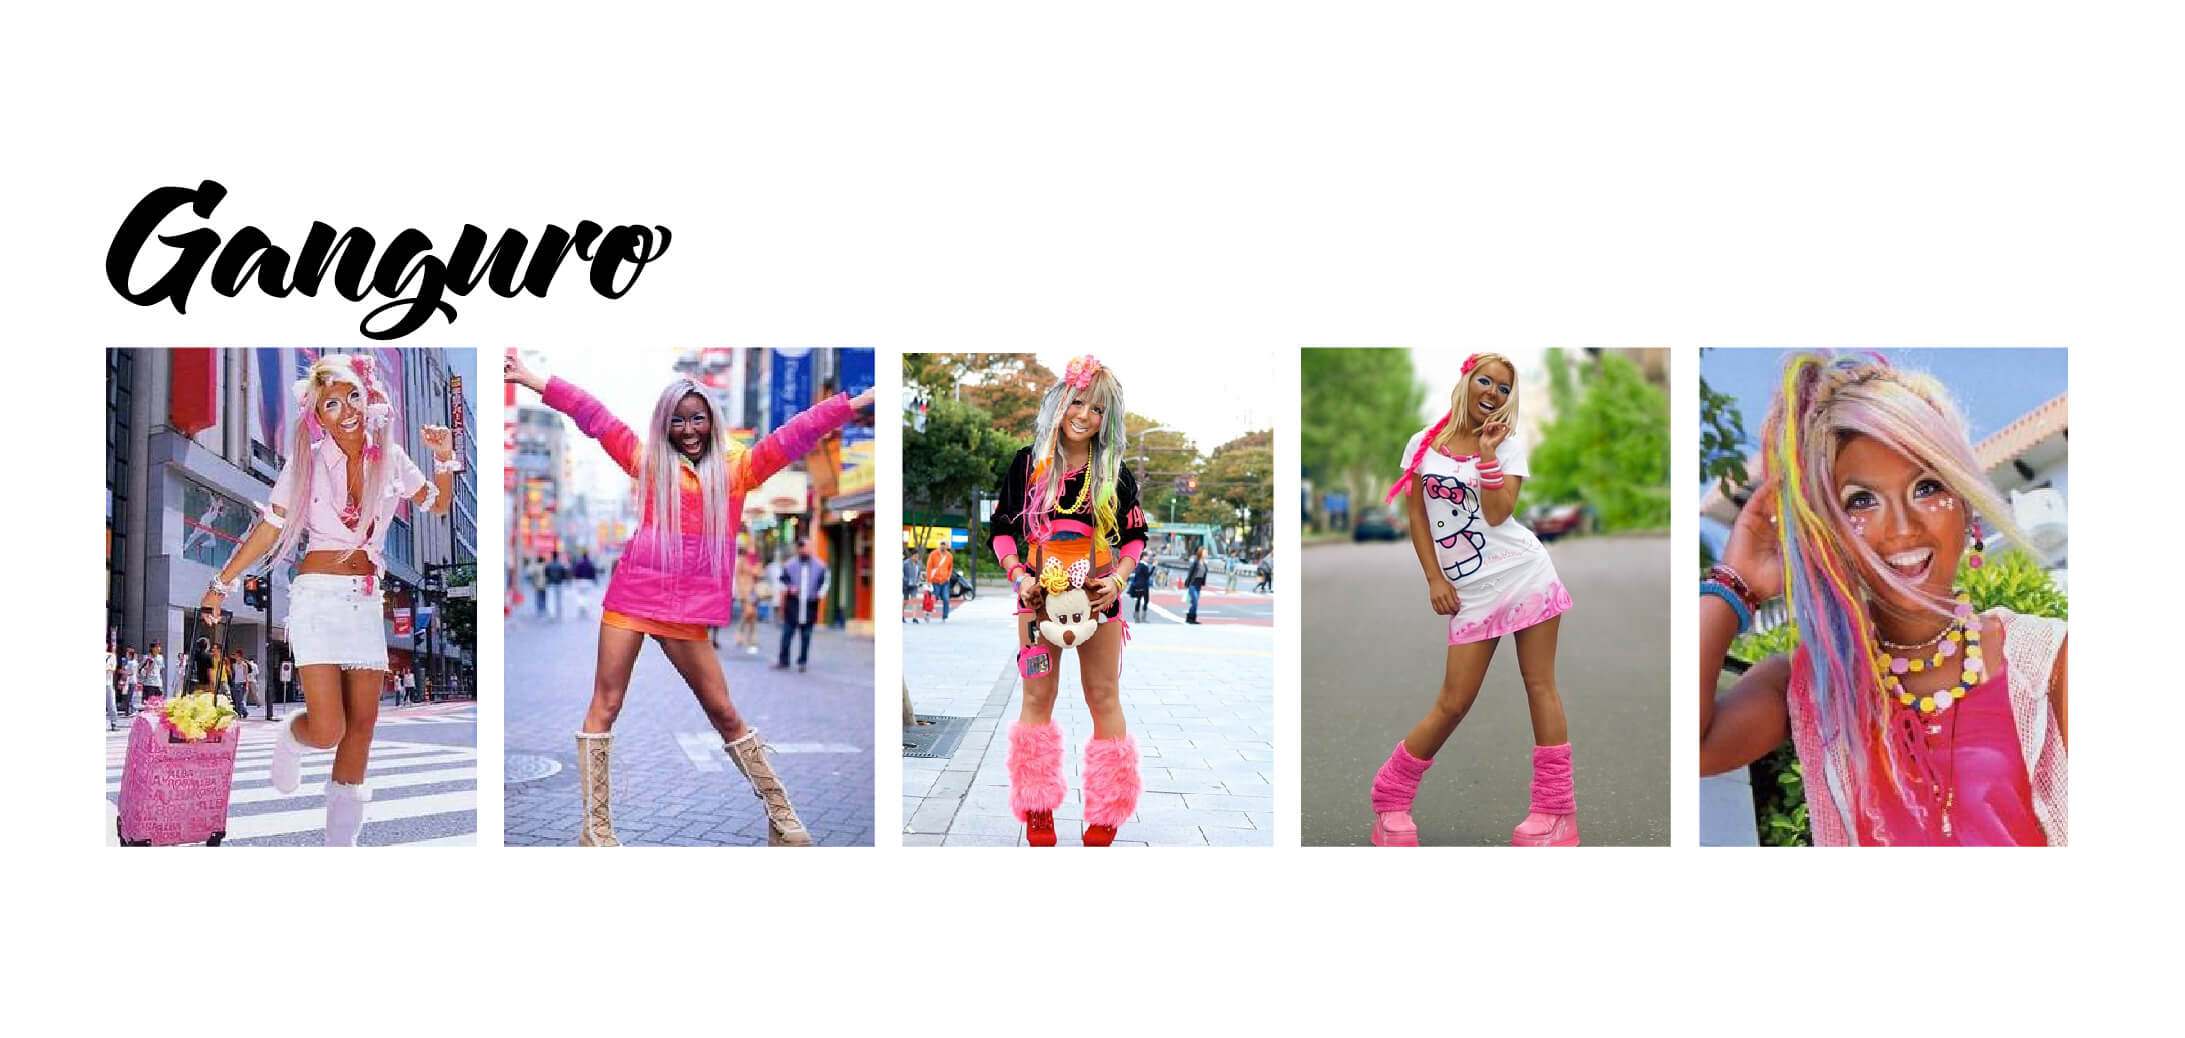 Examples of Ganguro fashion